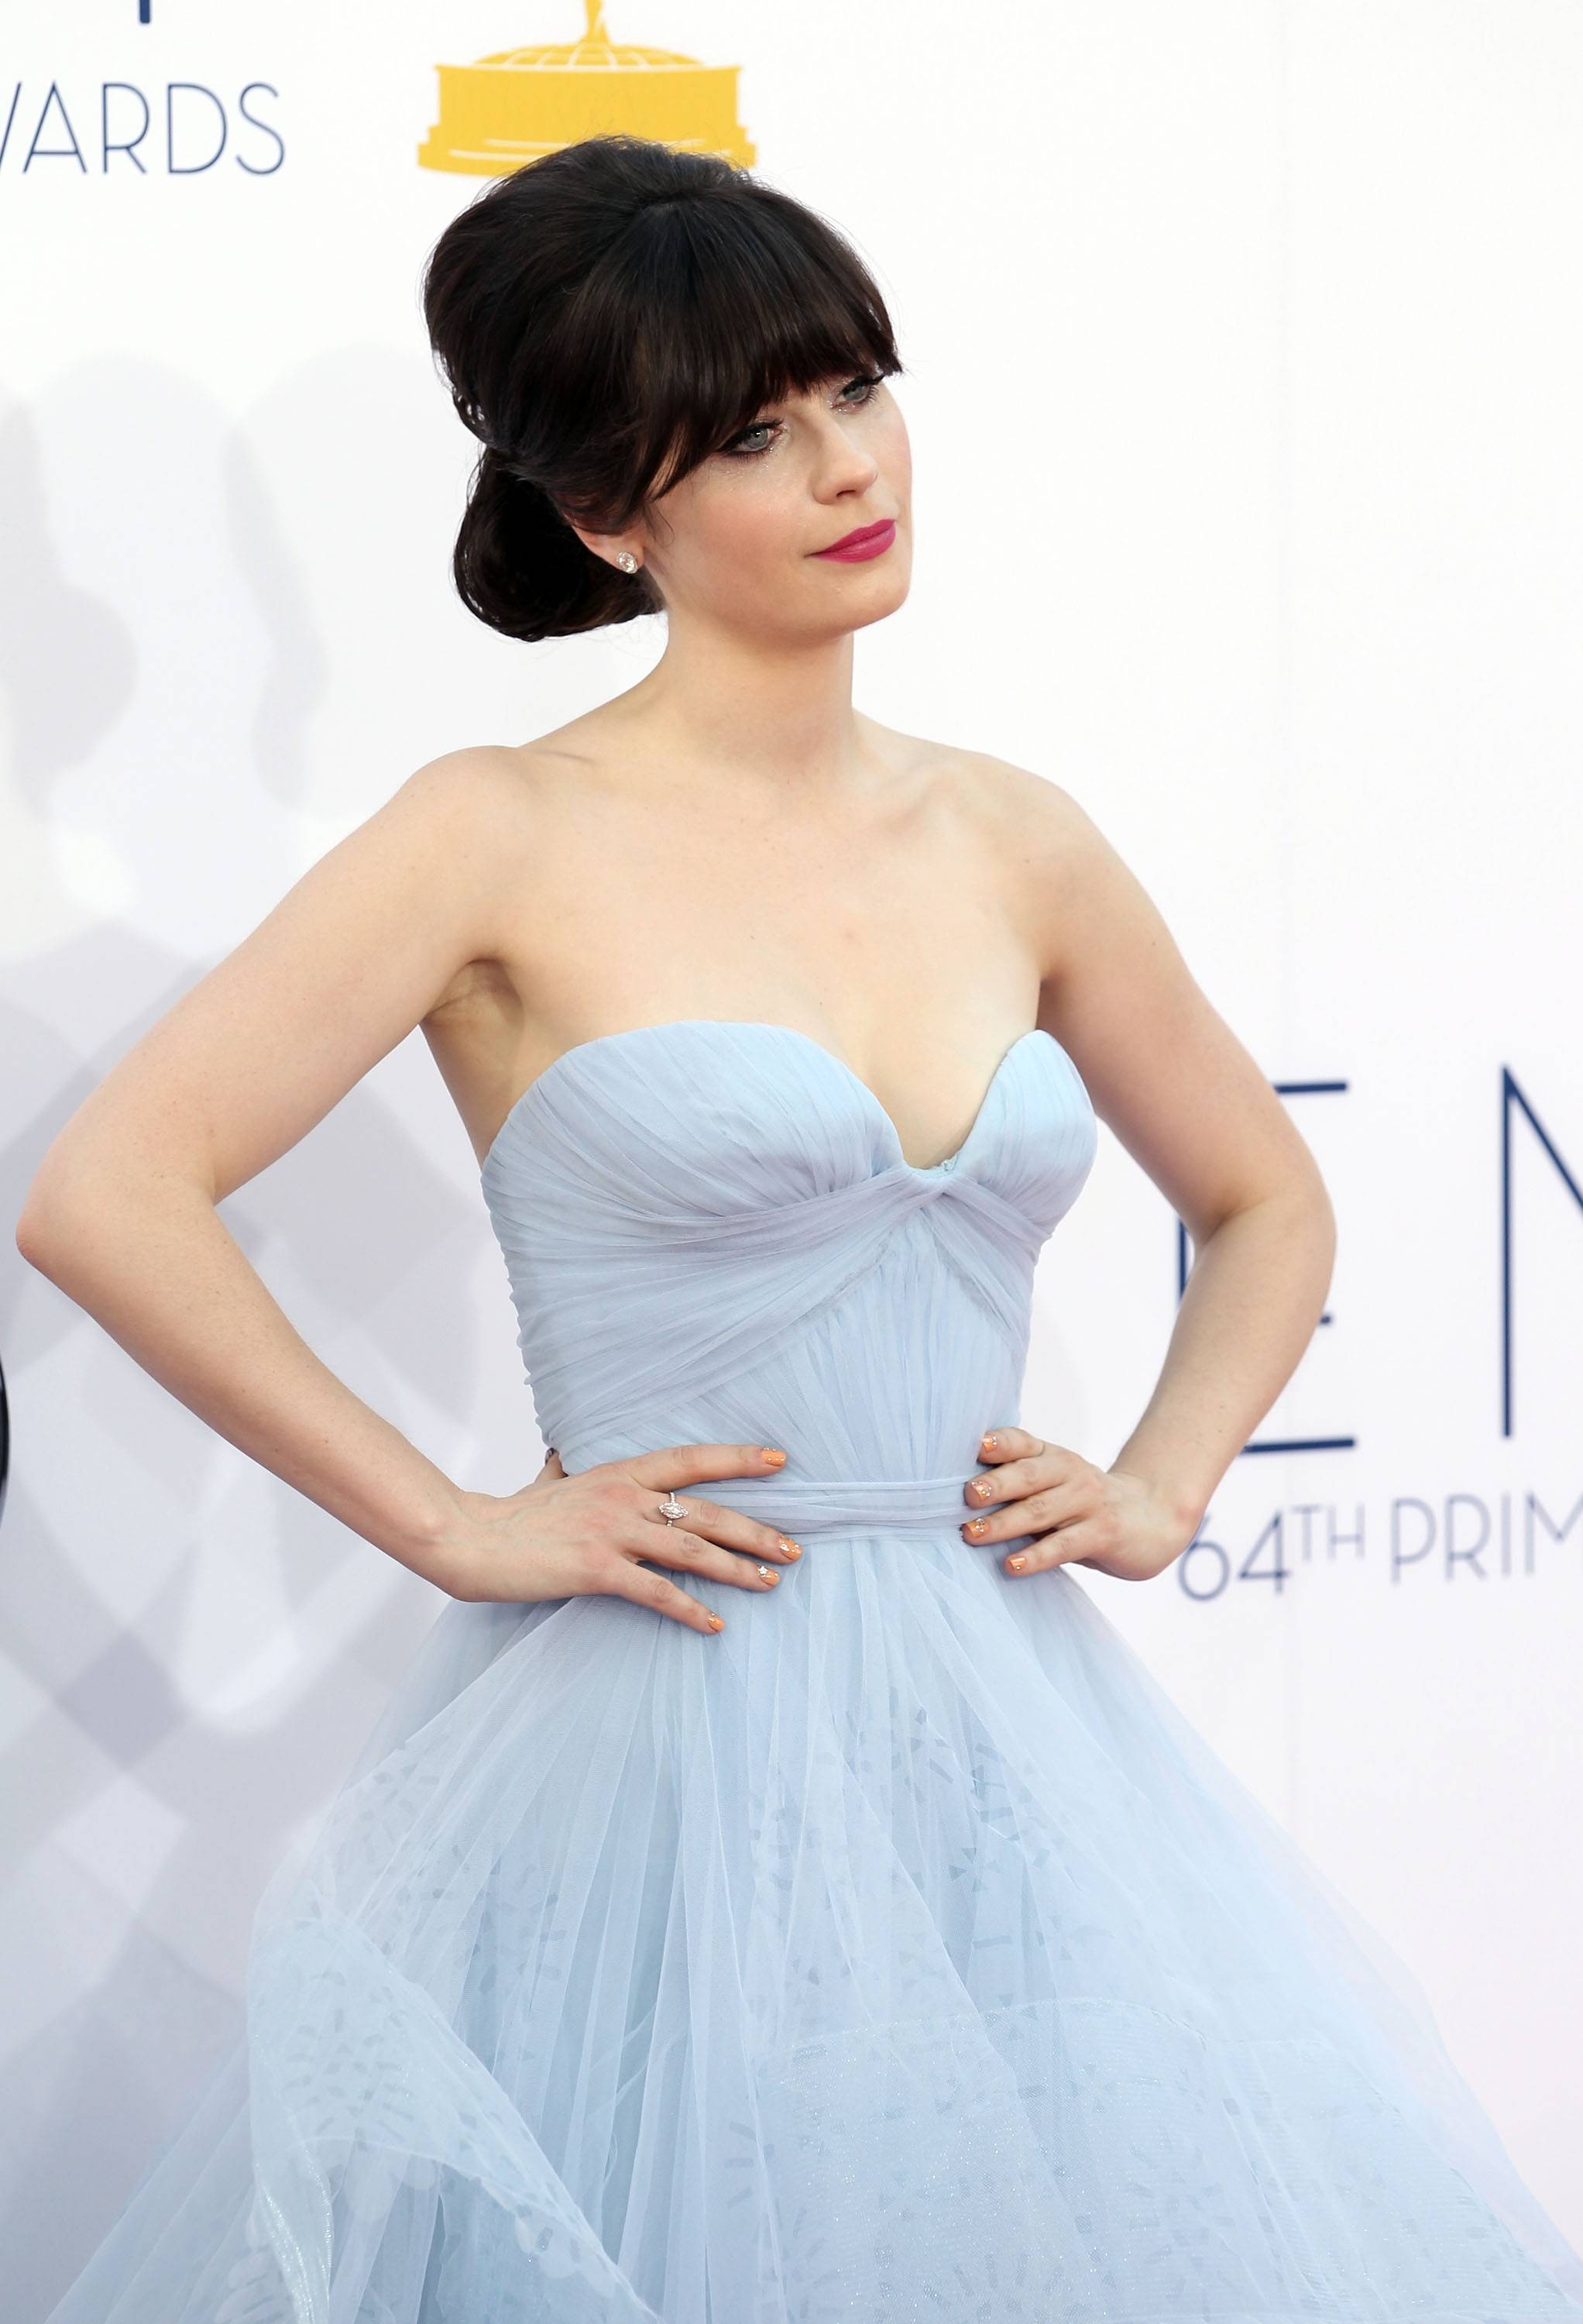 """New Girl"" star Zooey Deschanel picks a more offbeat gown for her first Emmy nomination for her role as Jess."